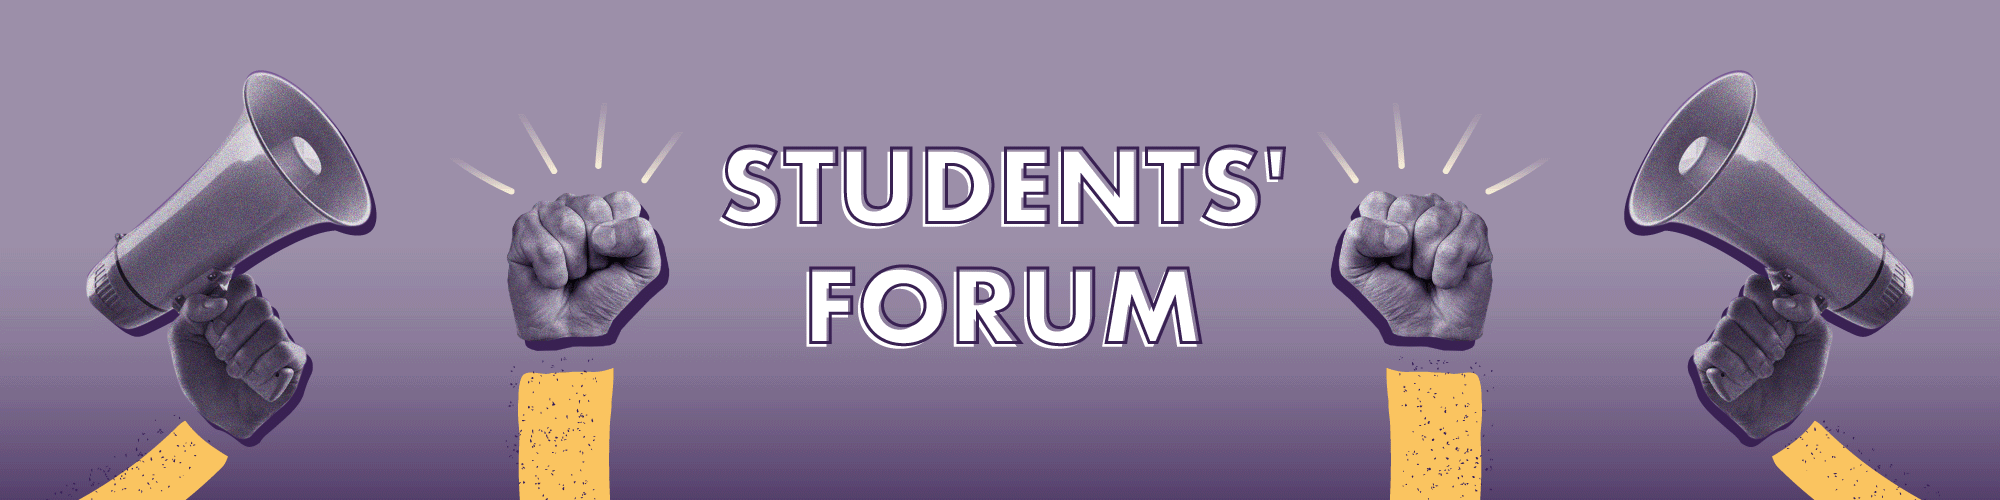 Students' Forum: Student Housing - What's going on?